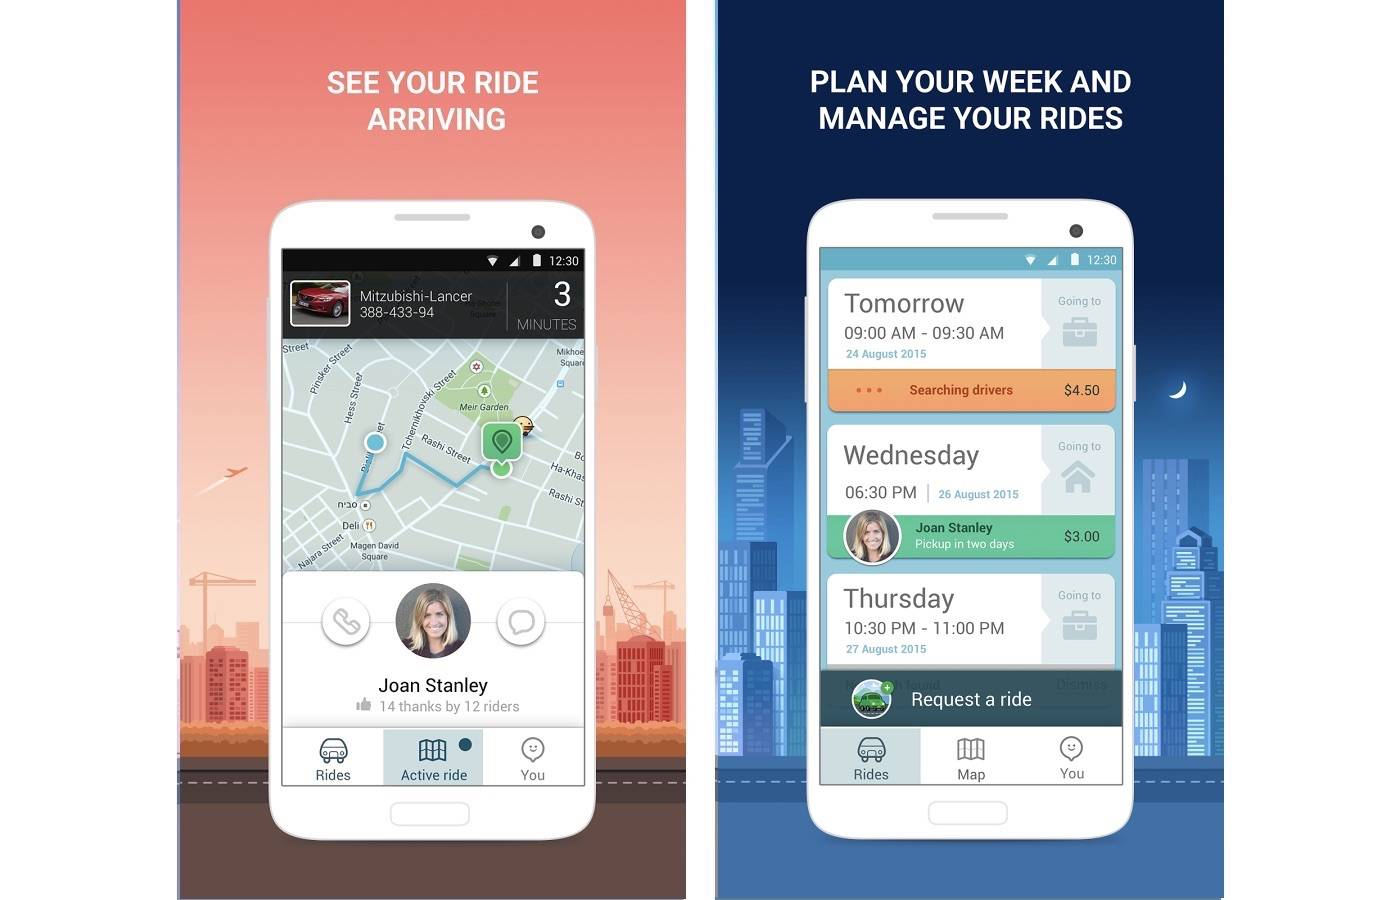 RideWith rebranded as 'Waze Rider', still on limited test run